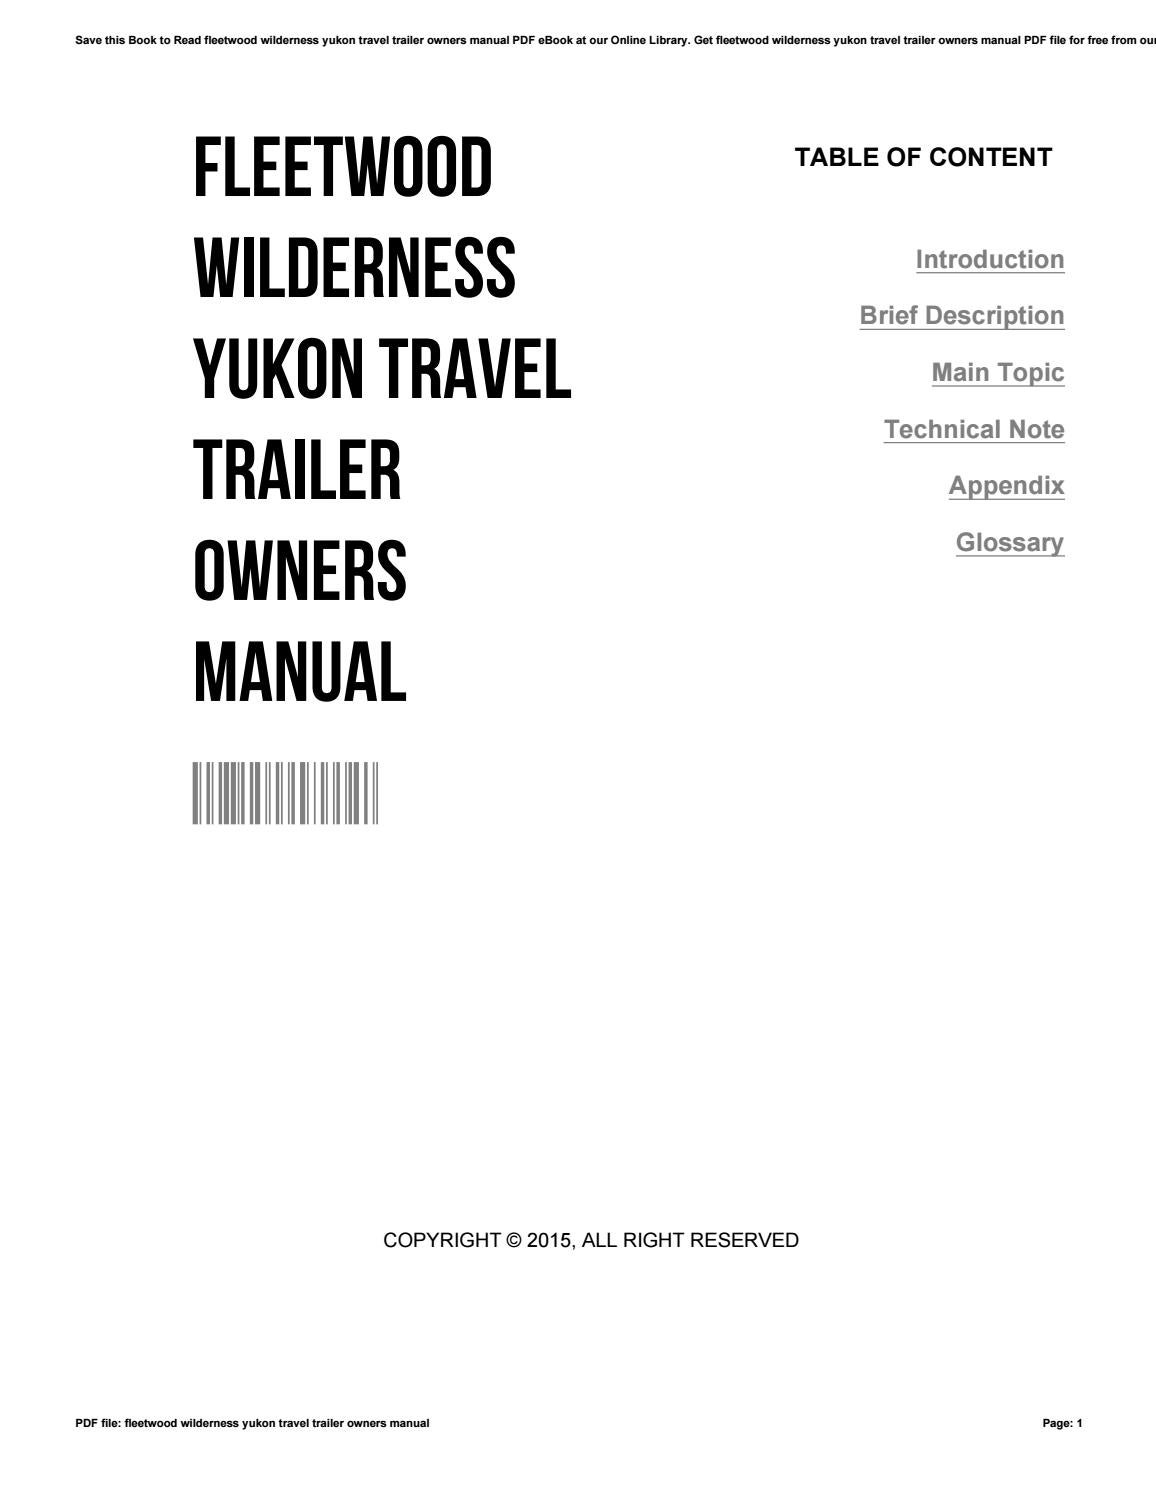 fleetwood tent trailer owners manual